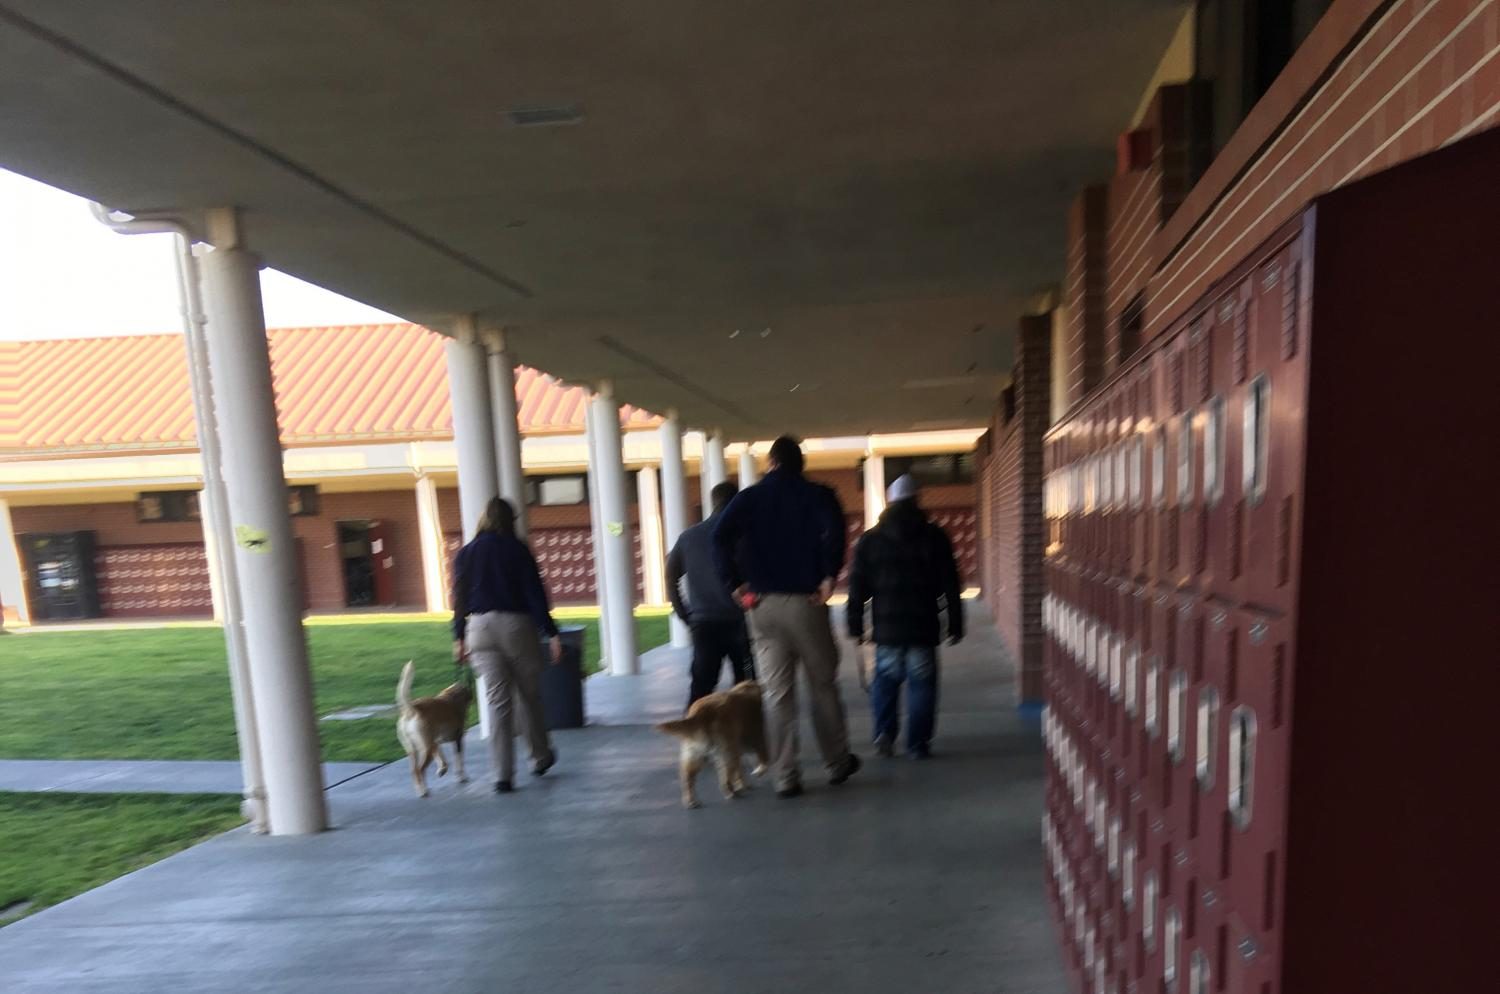 Drug-sniffing dogs make their way to random classrooms as part of a MUSD program.